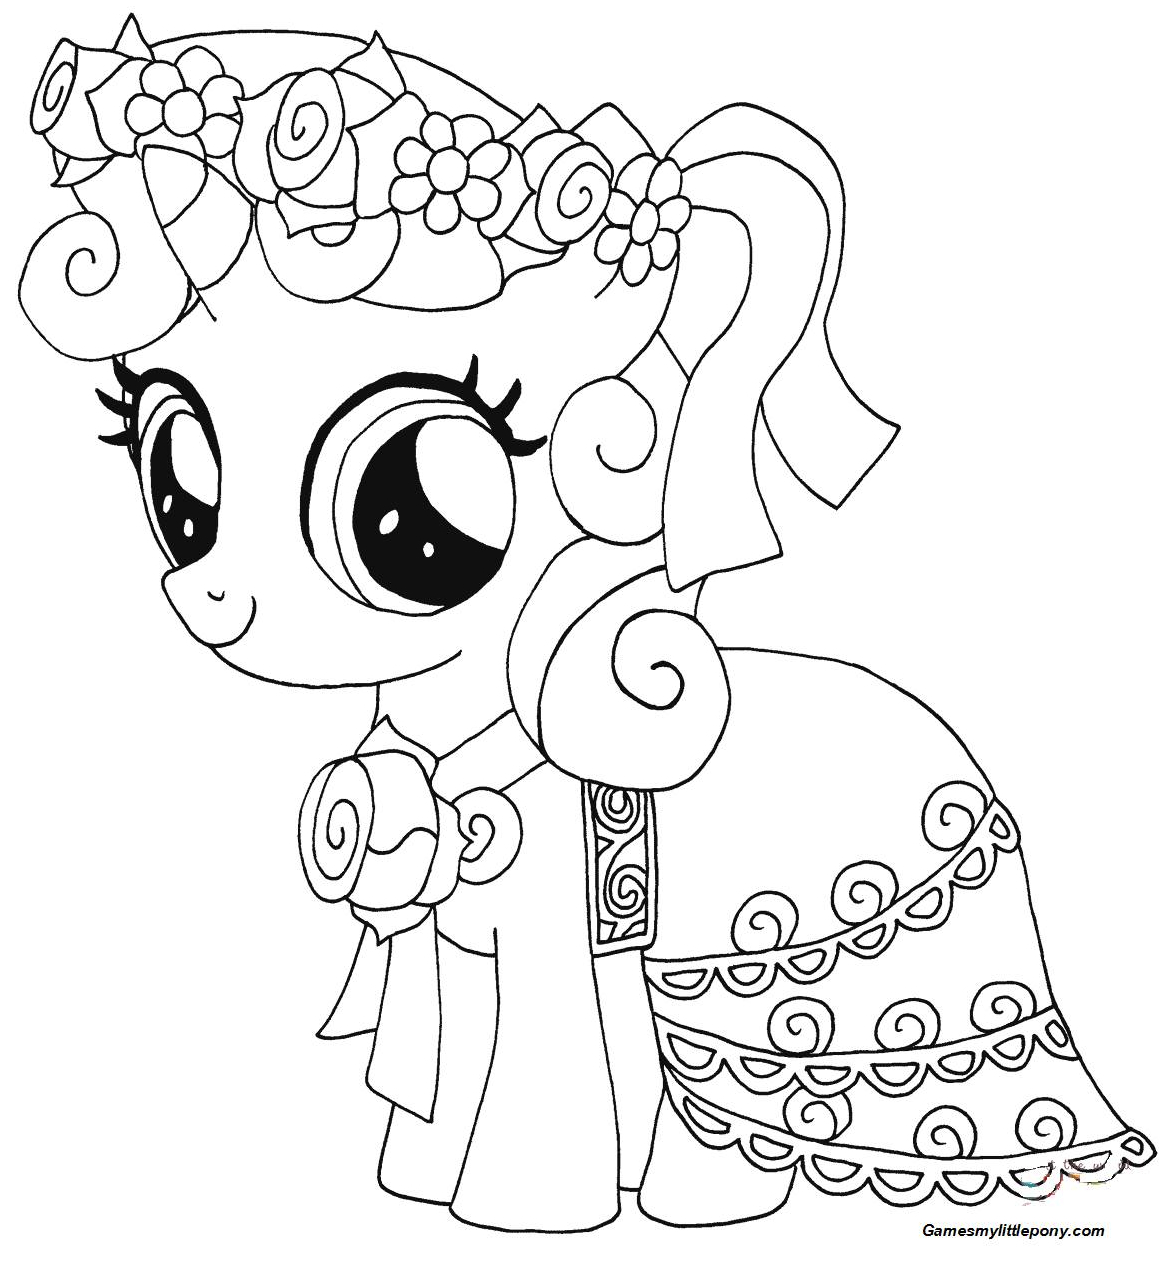 My Little Pony Sweetie Belle from My Little Pony